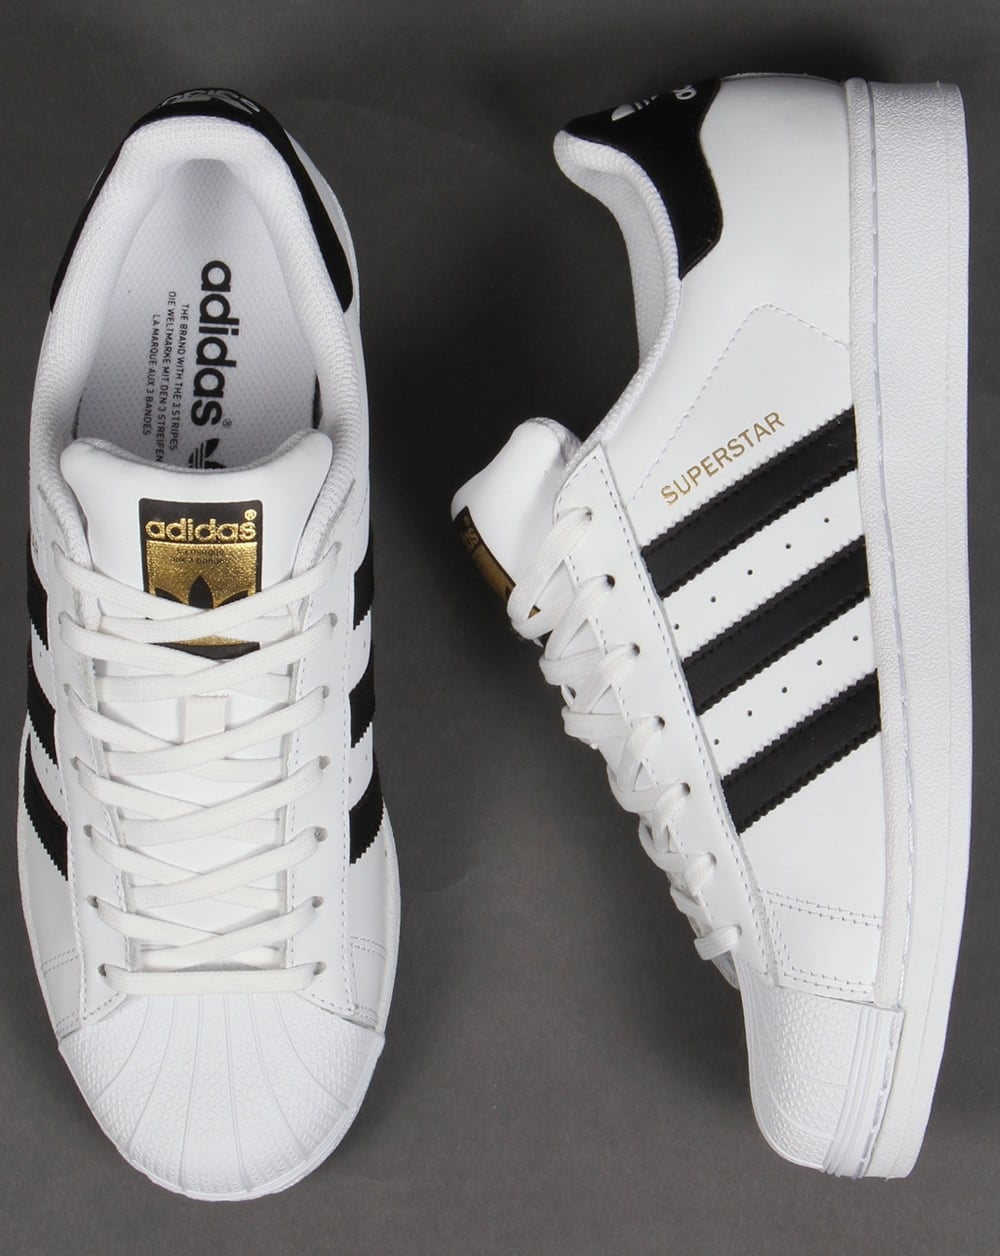 adidas Superstar Up Shoes White adidas US Shoes and boots